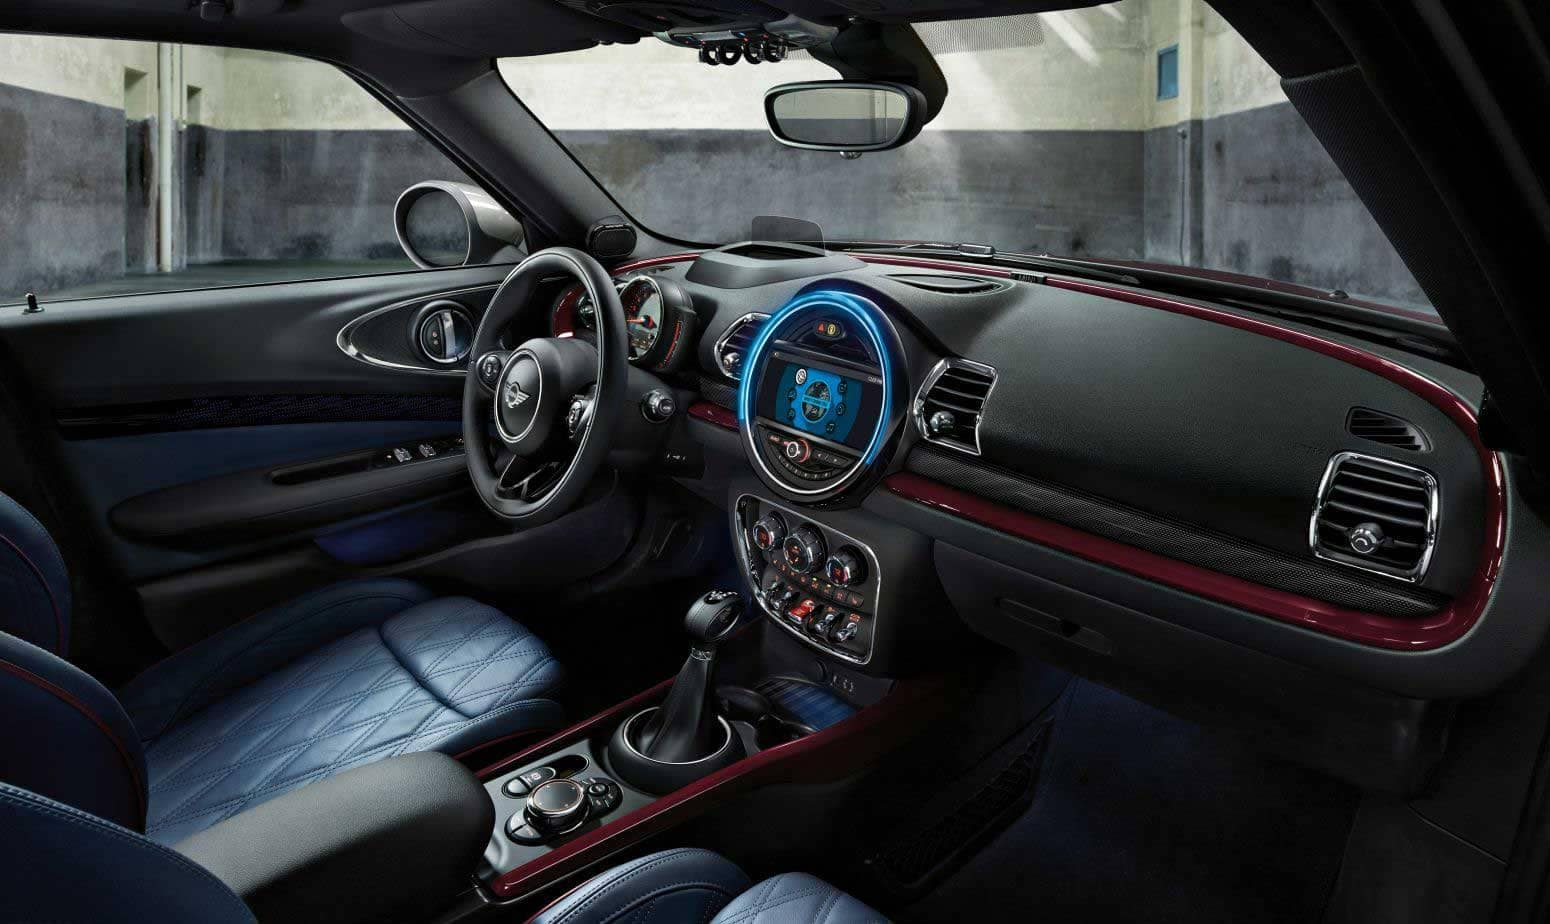 2018 Mini Clubman dashboard